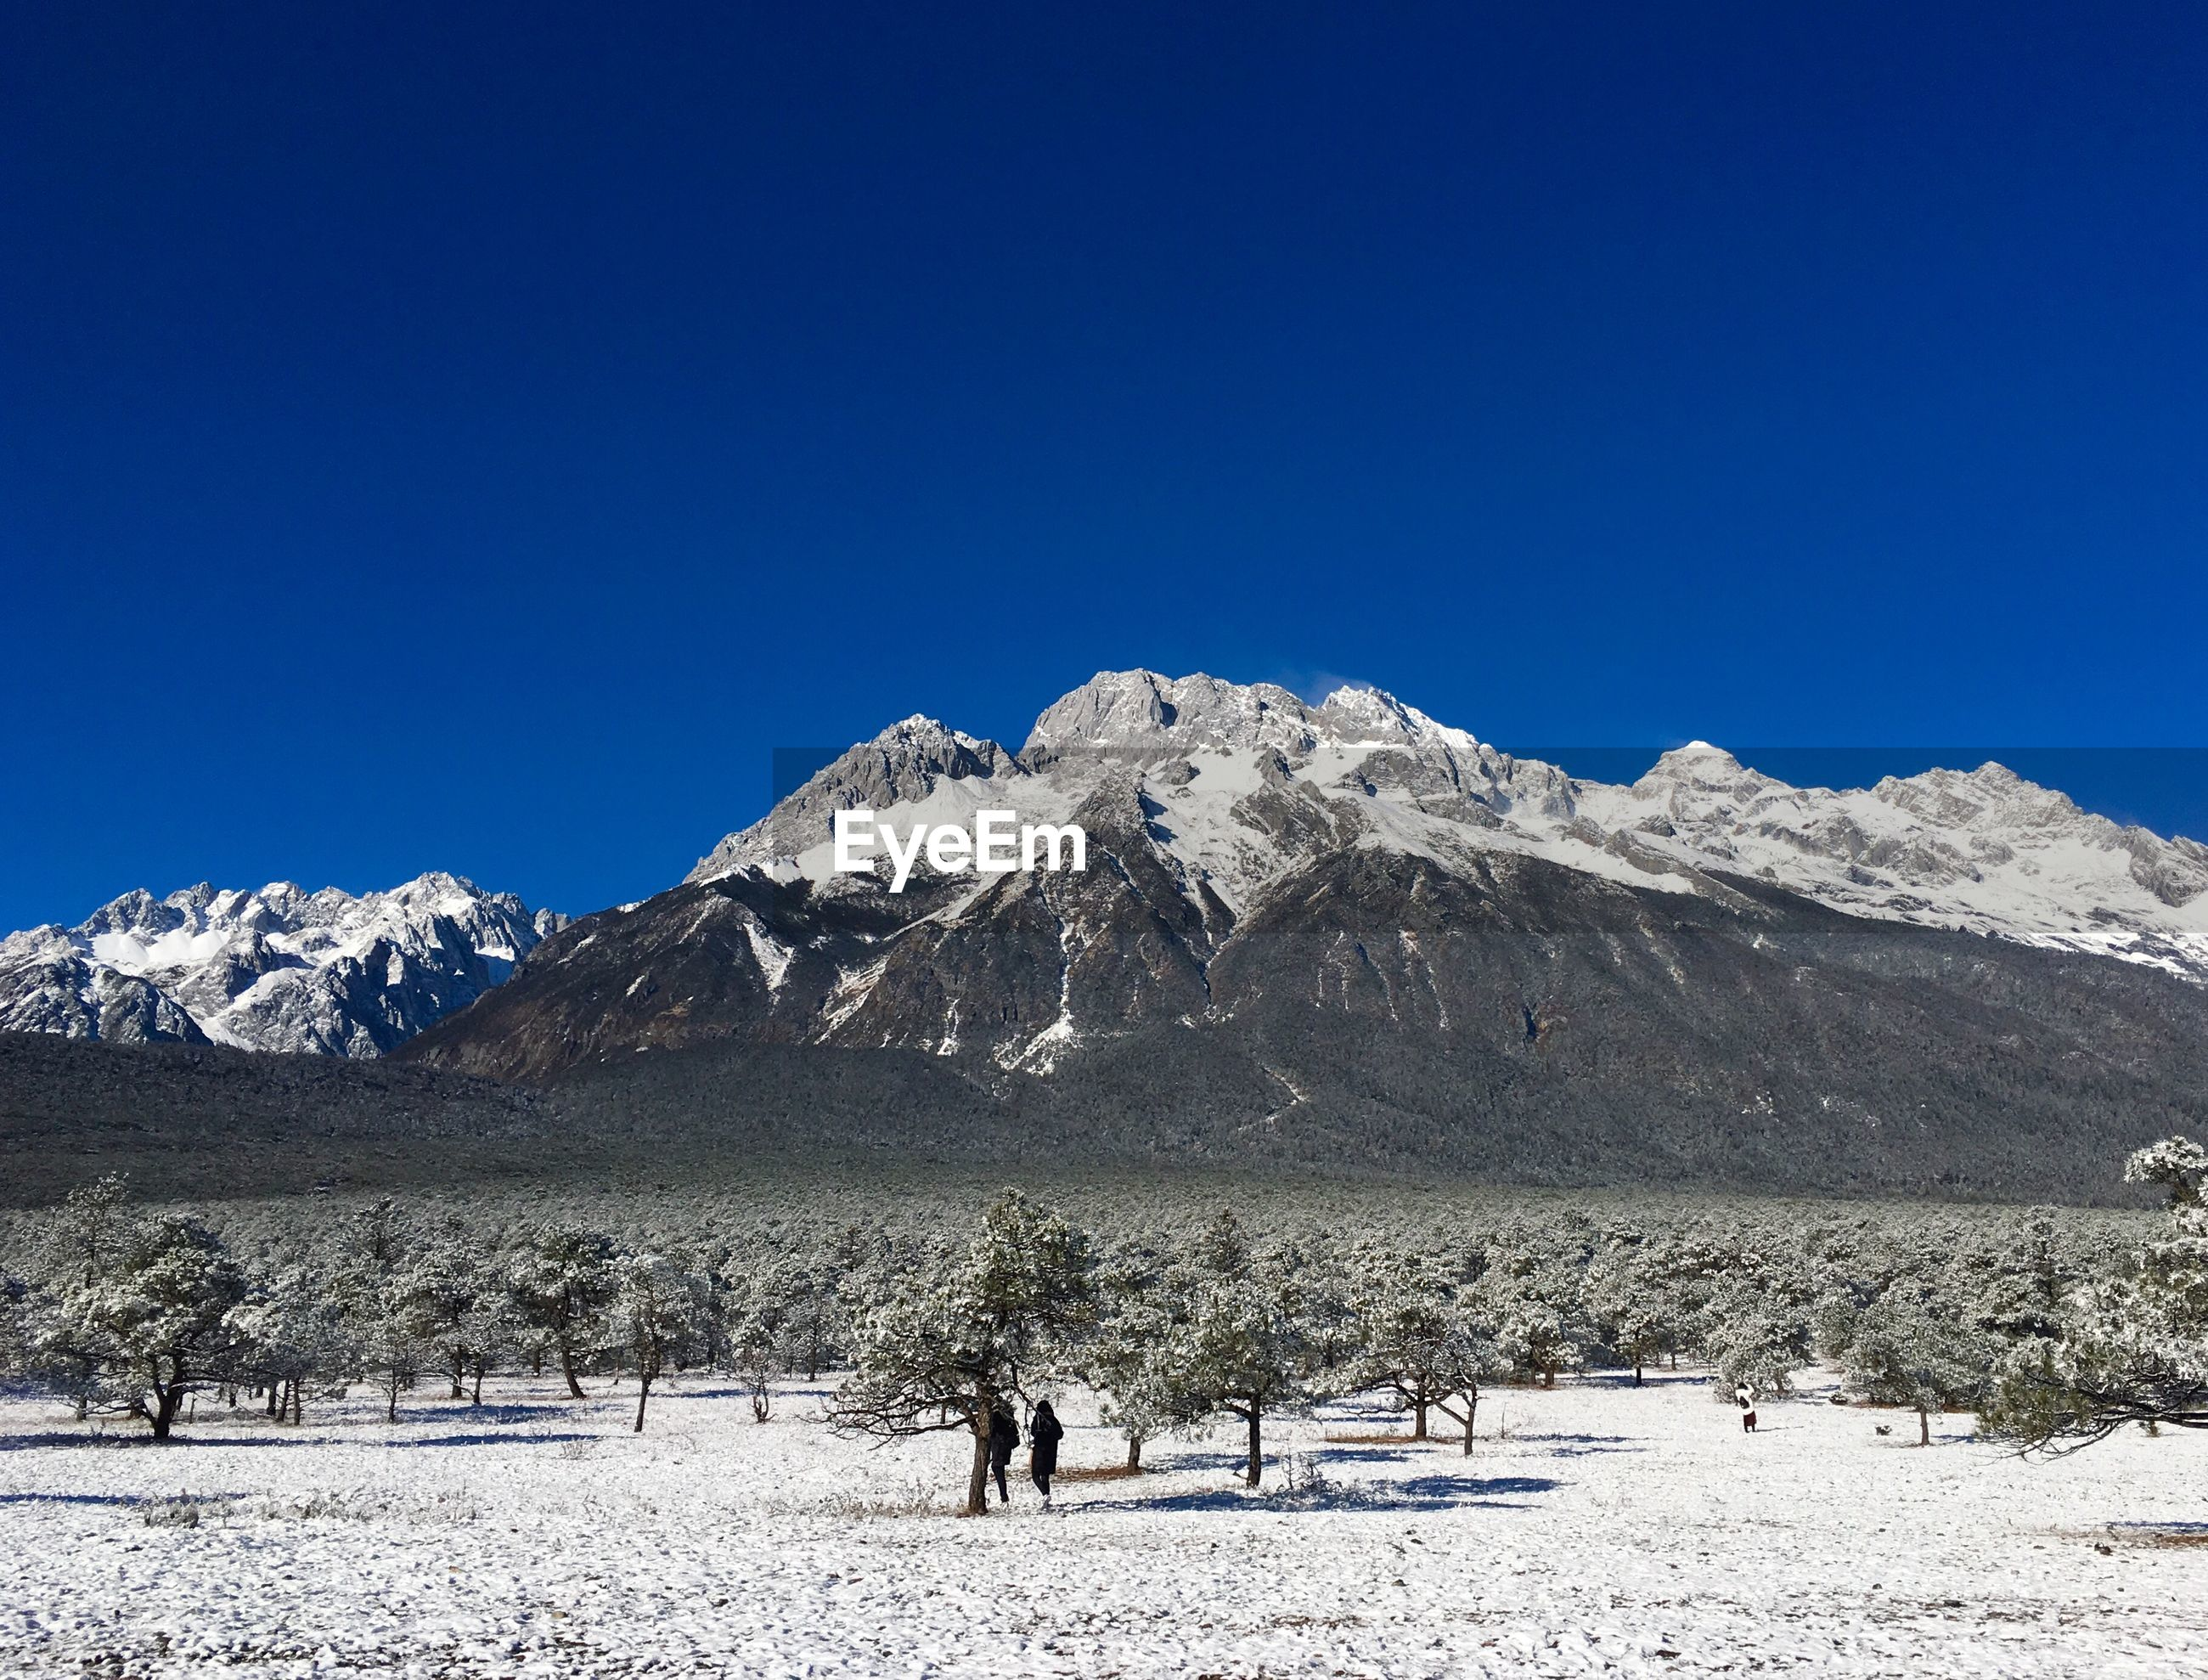 PEOPLE WALKING ON SNOWCAPPED MOUNTAIN AGAINST CLEAR BLUE SKY